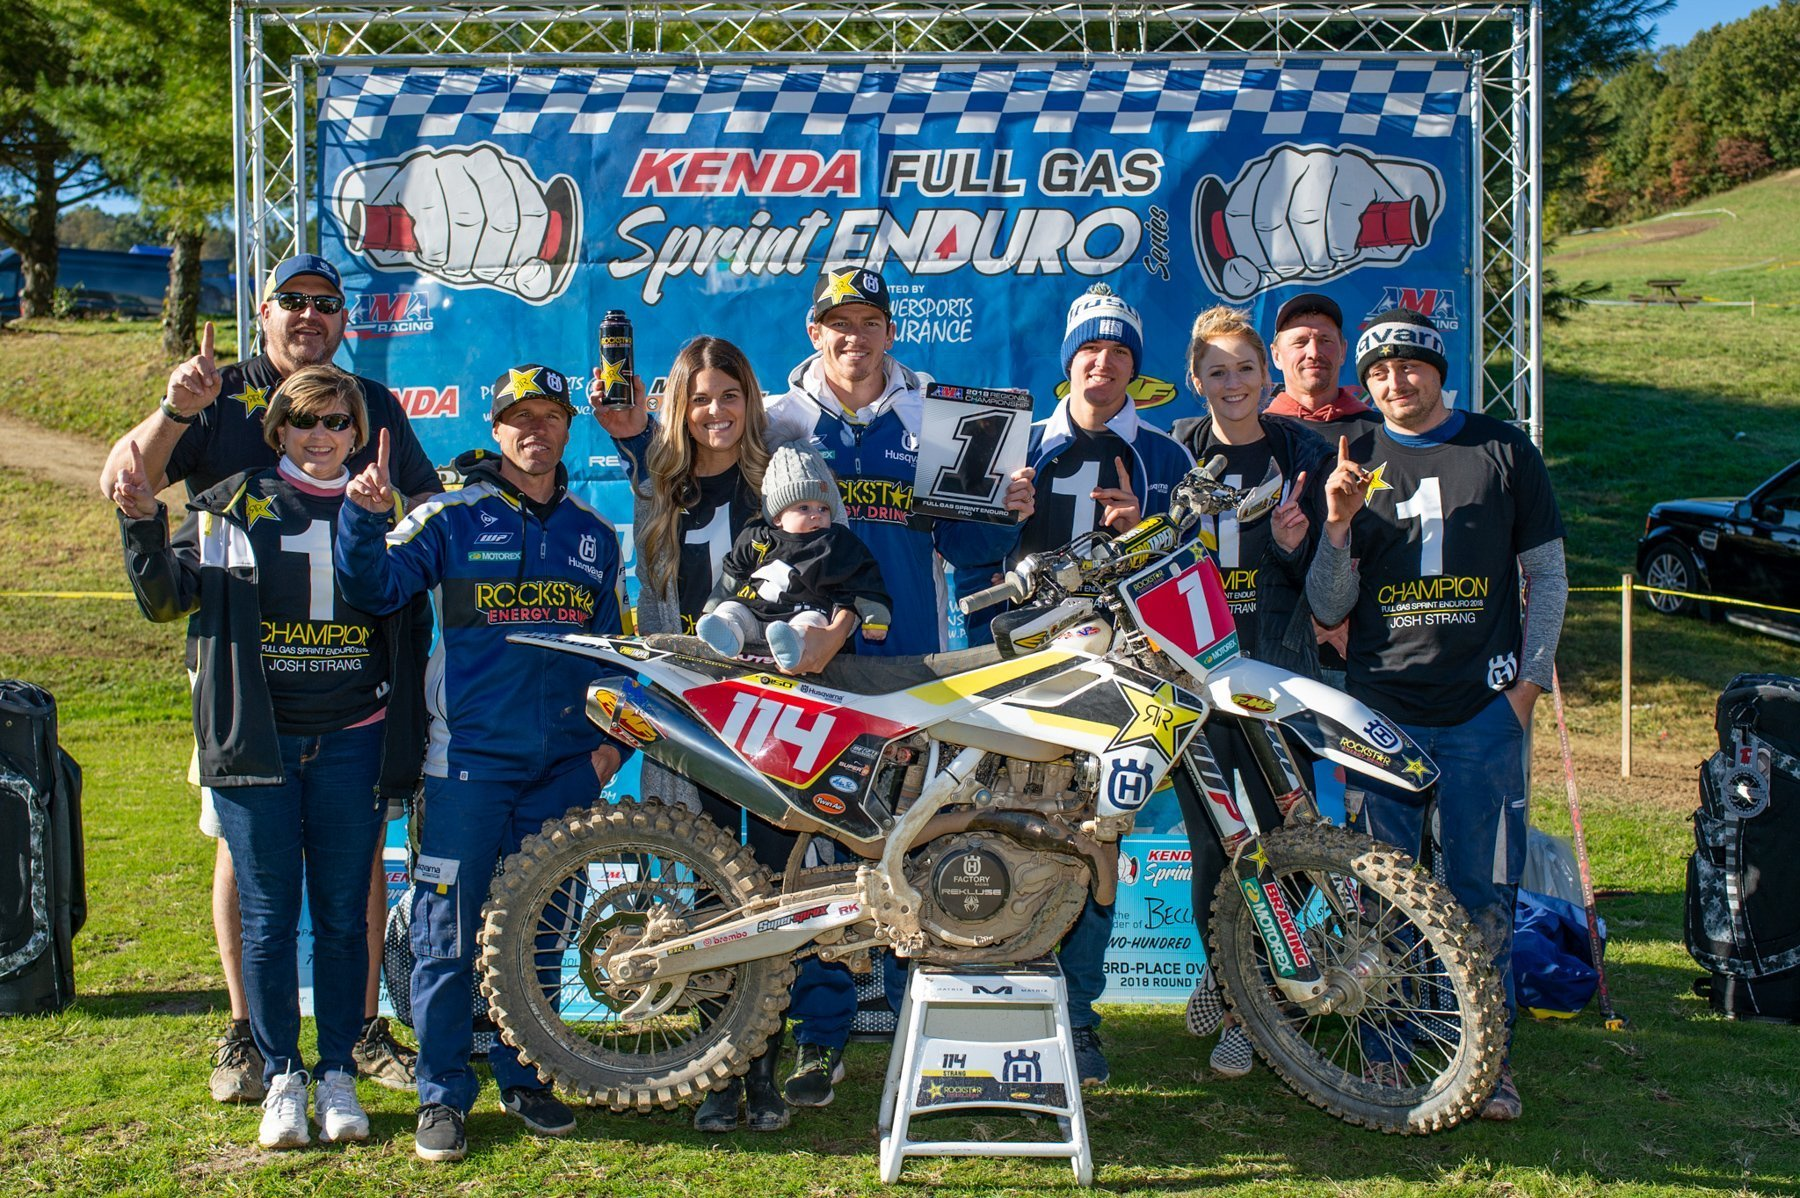 Baylor Wins Battle, Strang Wins War At Hidden Valley Sprint Enduro